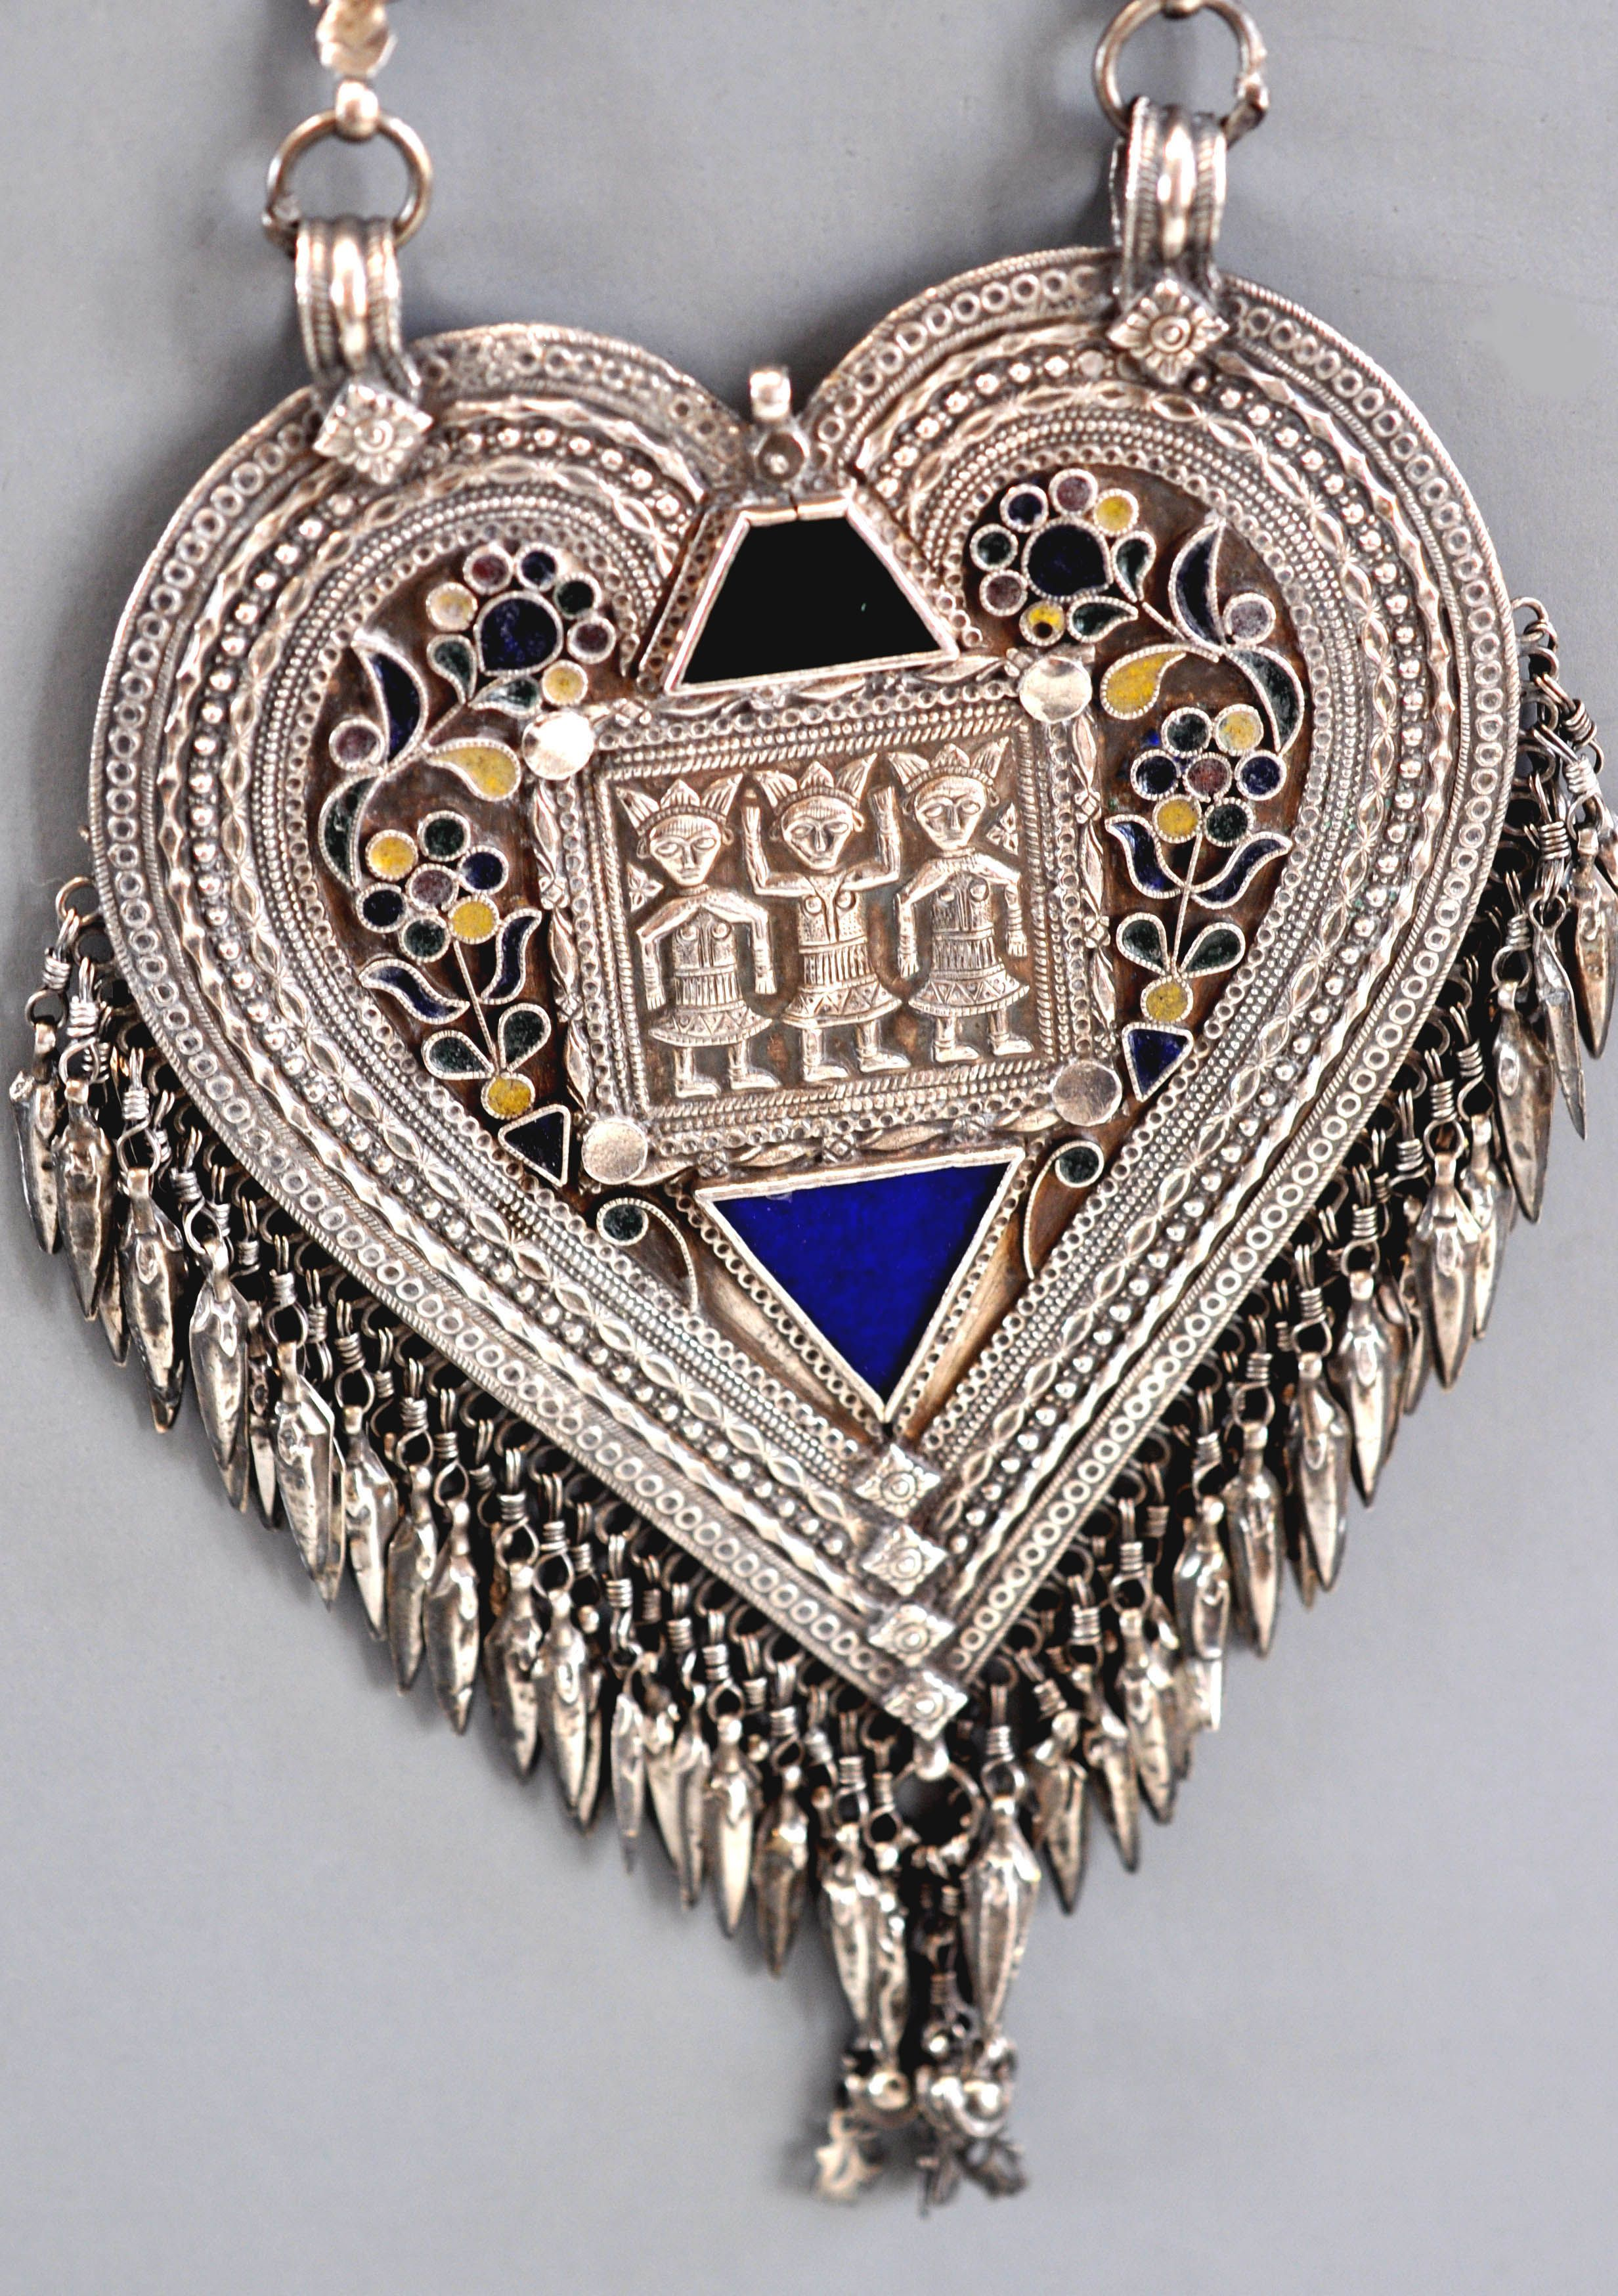 Detail of large necklace from Himachel Pradesh, India lt 19th c   (archives sold Singkiang)   info@singkiang.com